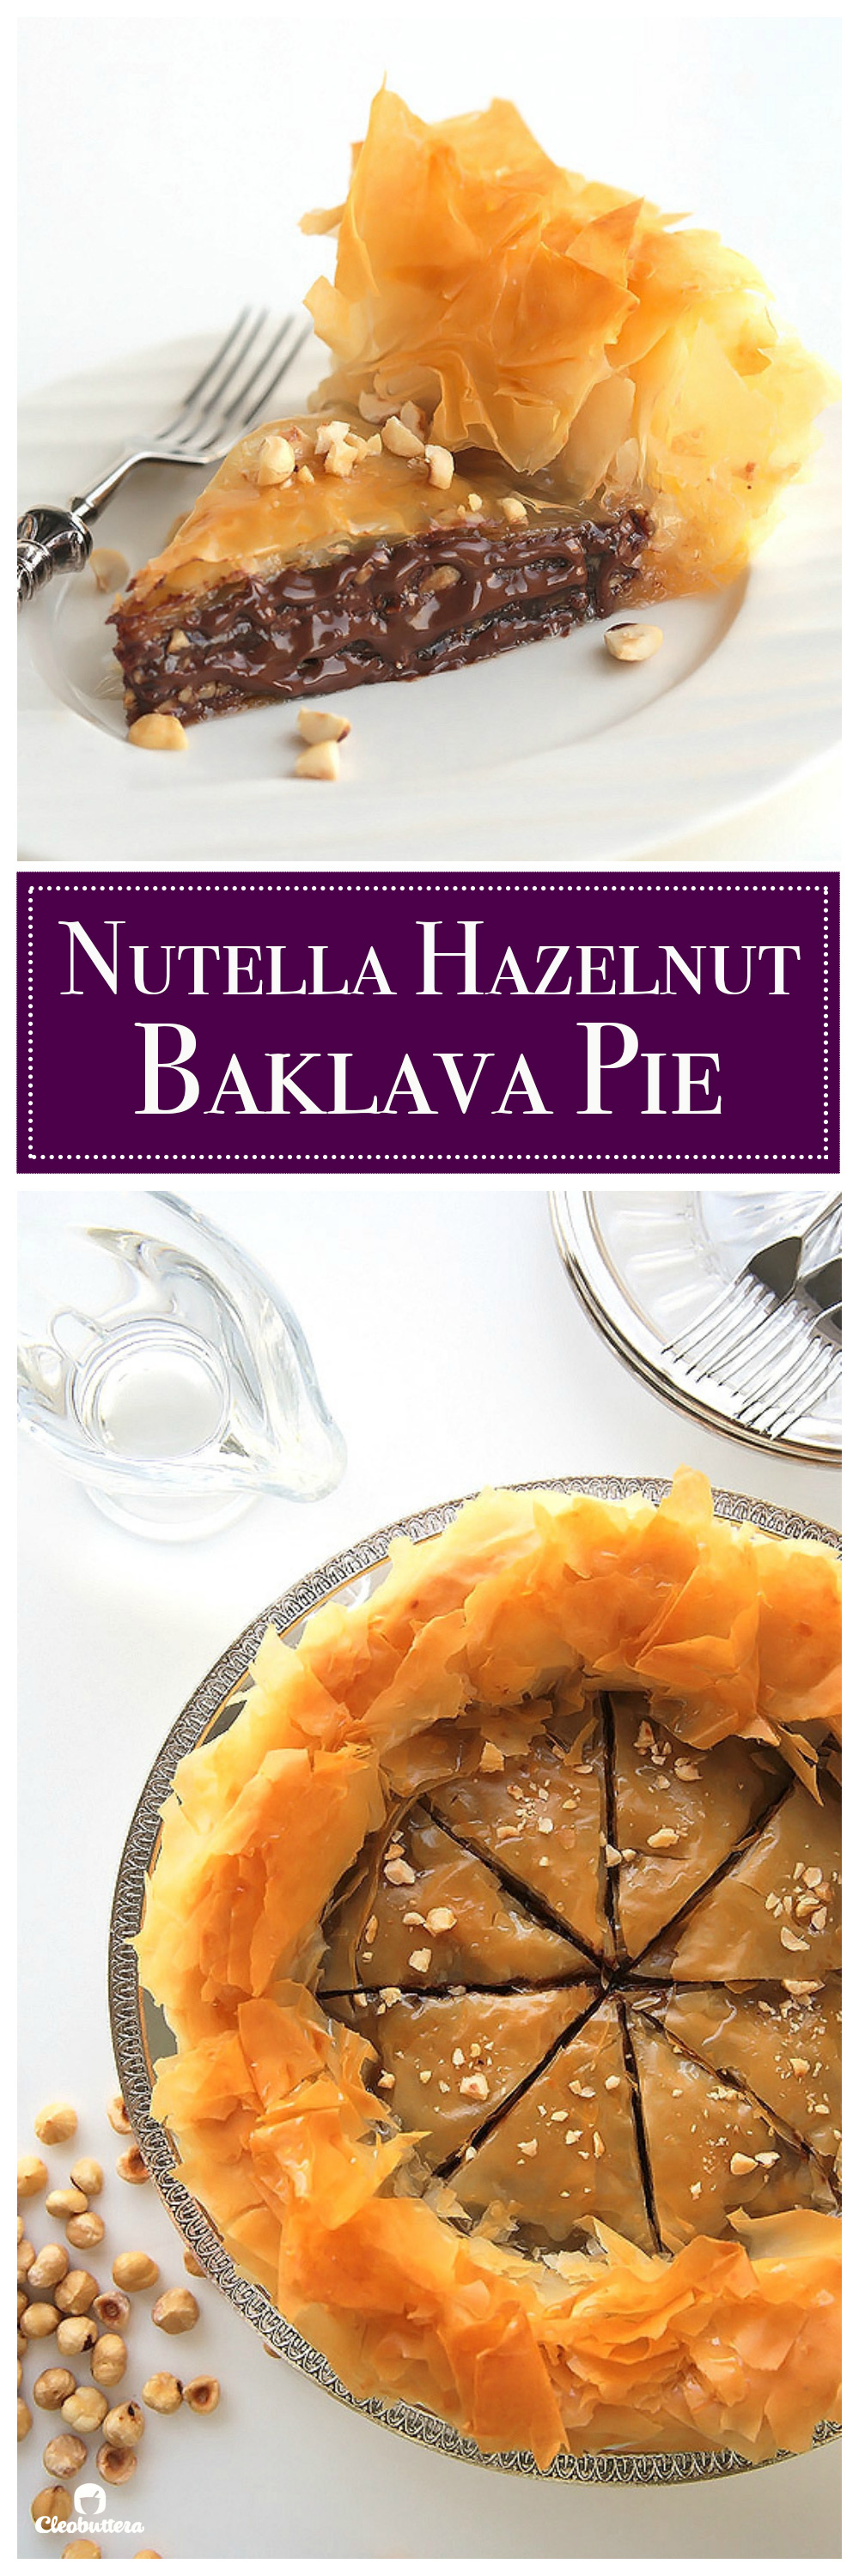 Nutella Baklava Hazelnut Pie - pinterest